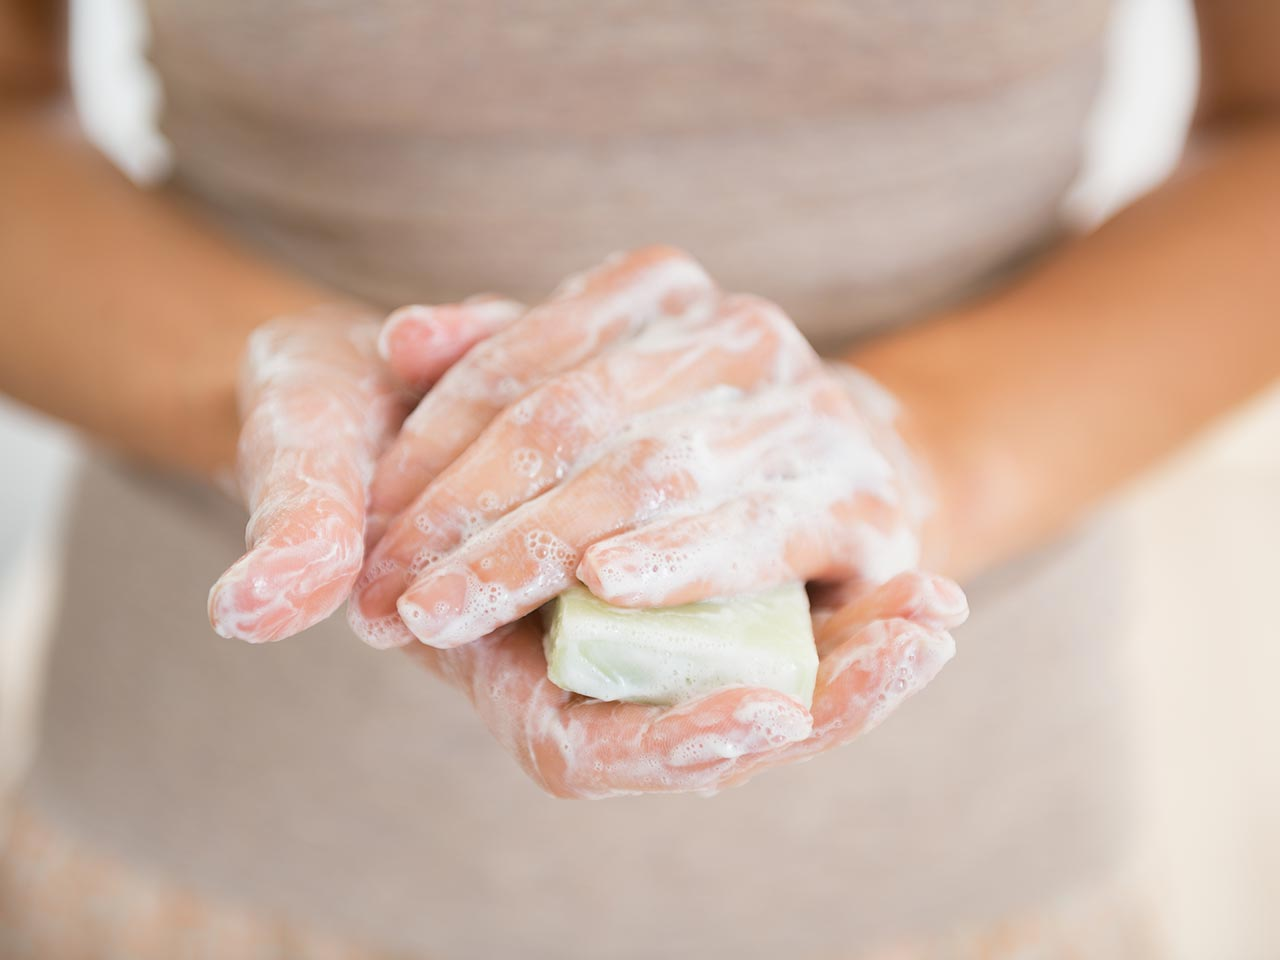 Lady washing hands with soap